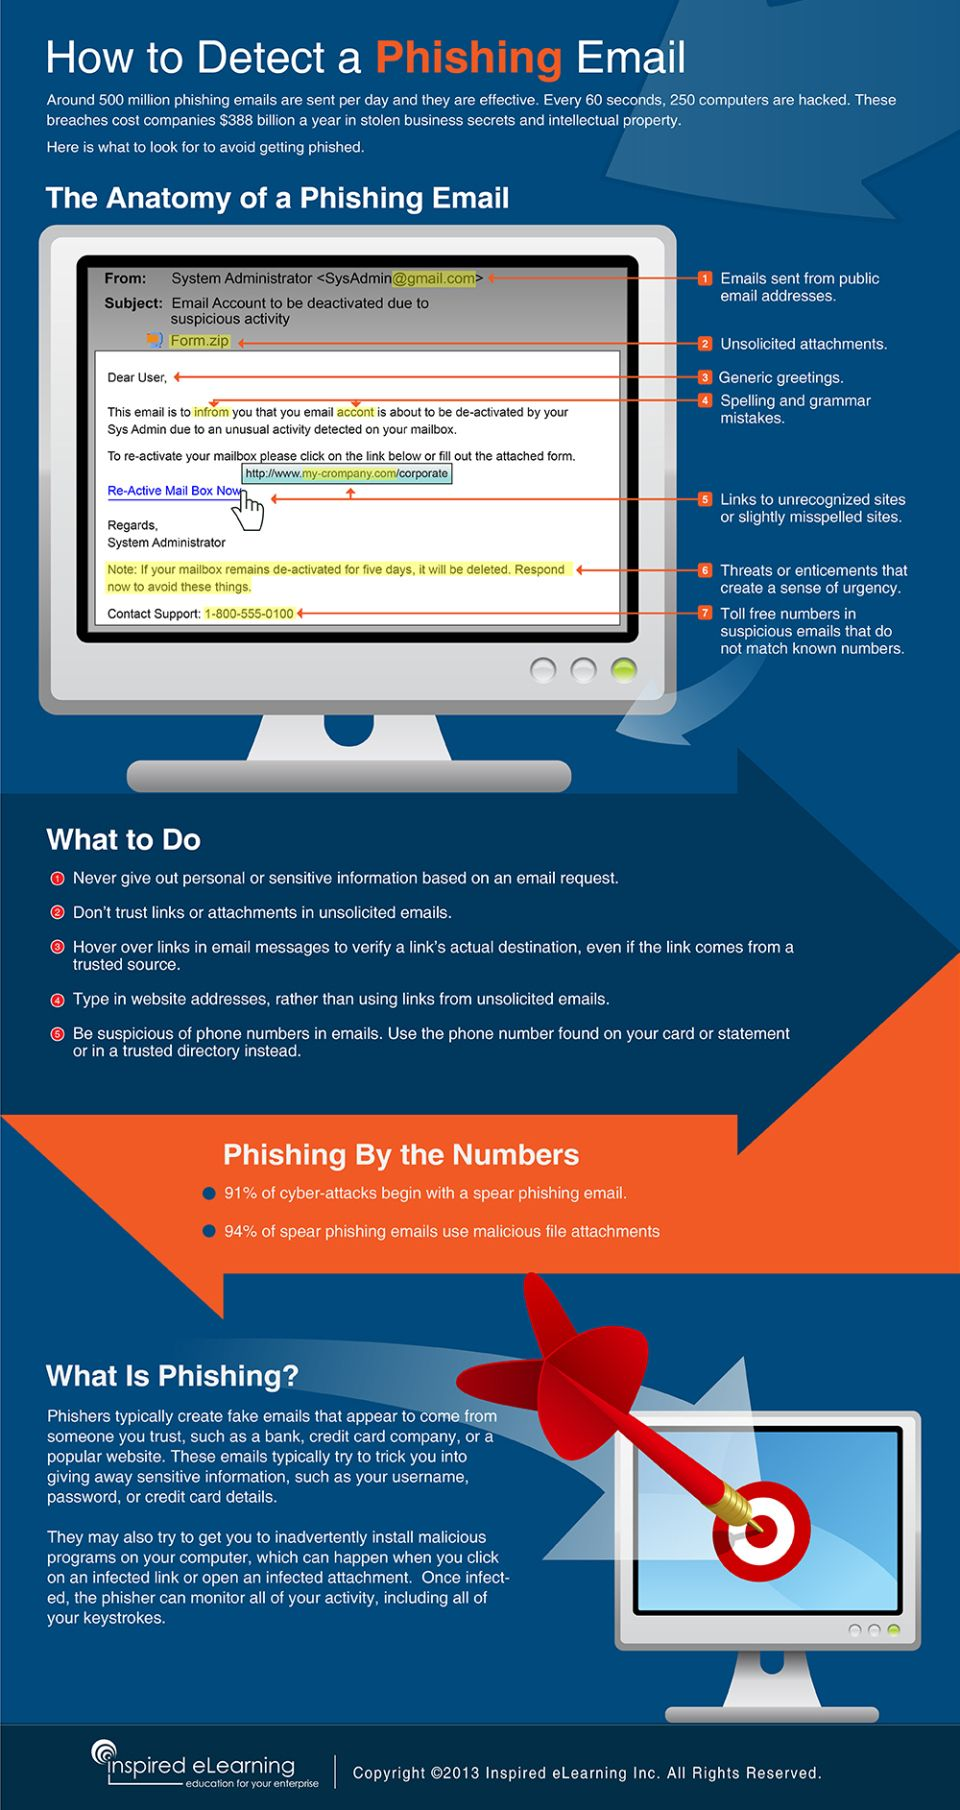 How to Detect a Malicious Email | SoC | Cyber security